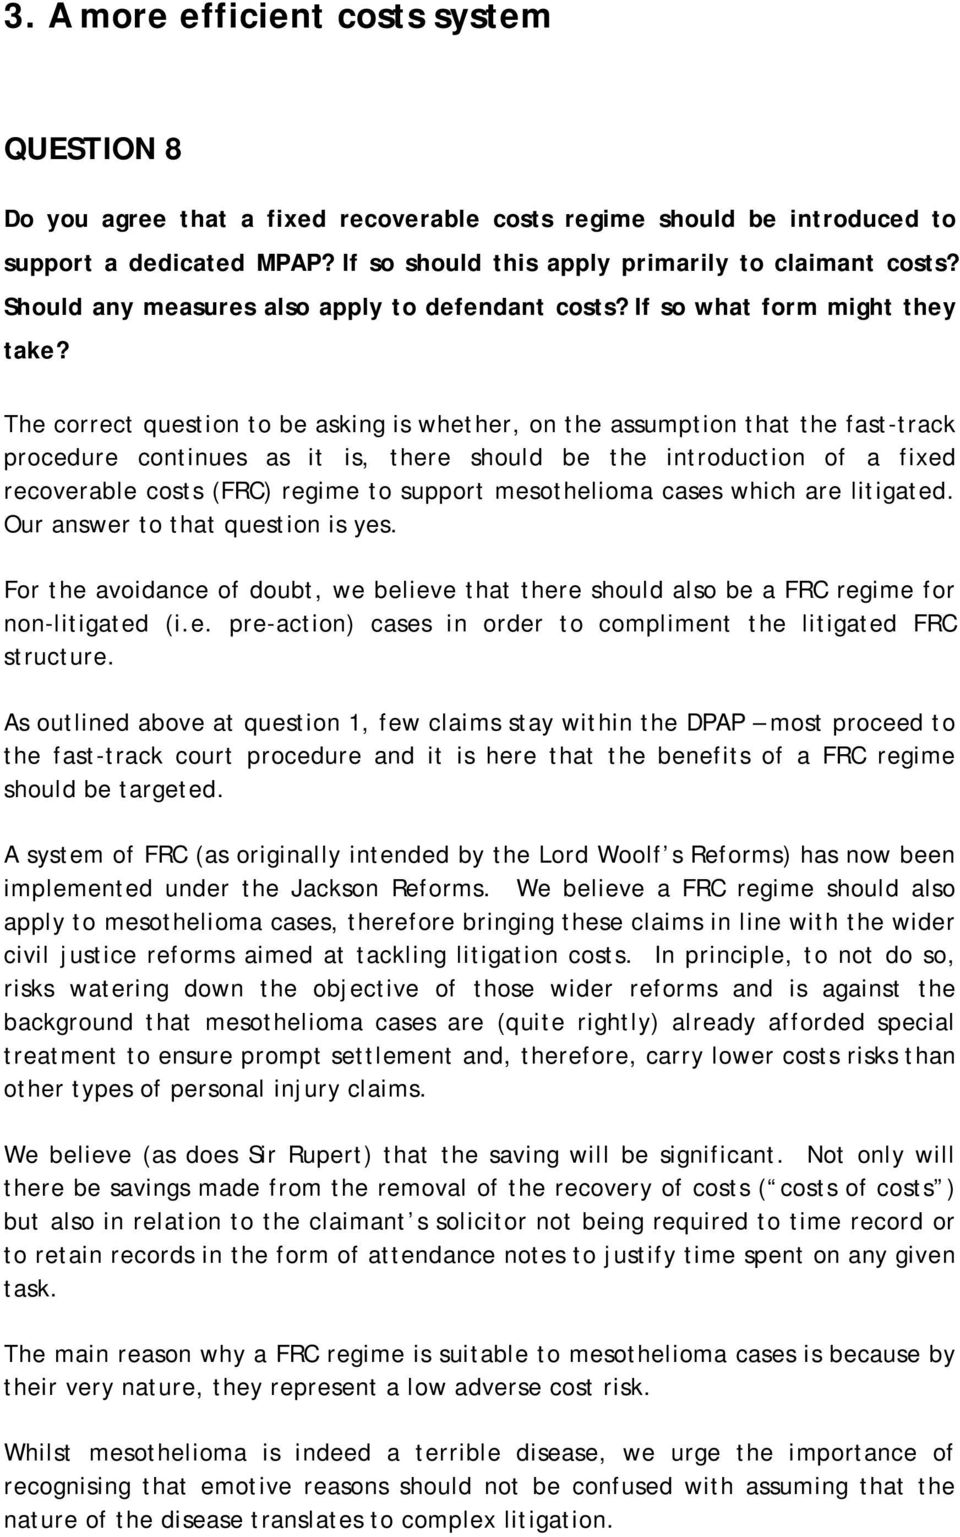 The correct question to be asking is whether, on the assumption that the fast-track procedure continues as it is, there should be the introduction of a fixed recoverable costs (FRC) regime to support